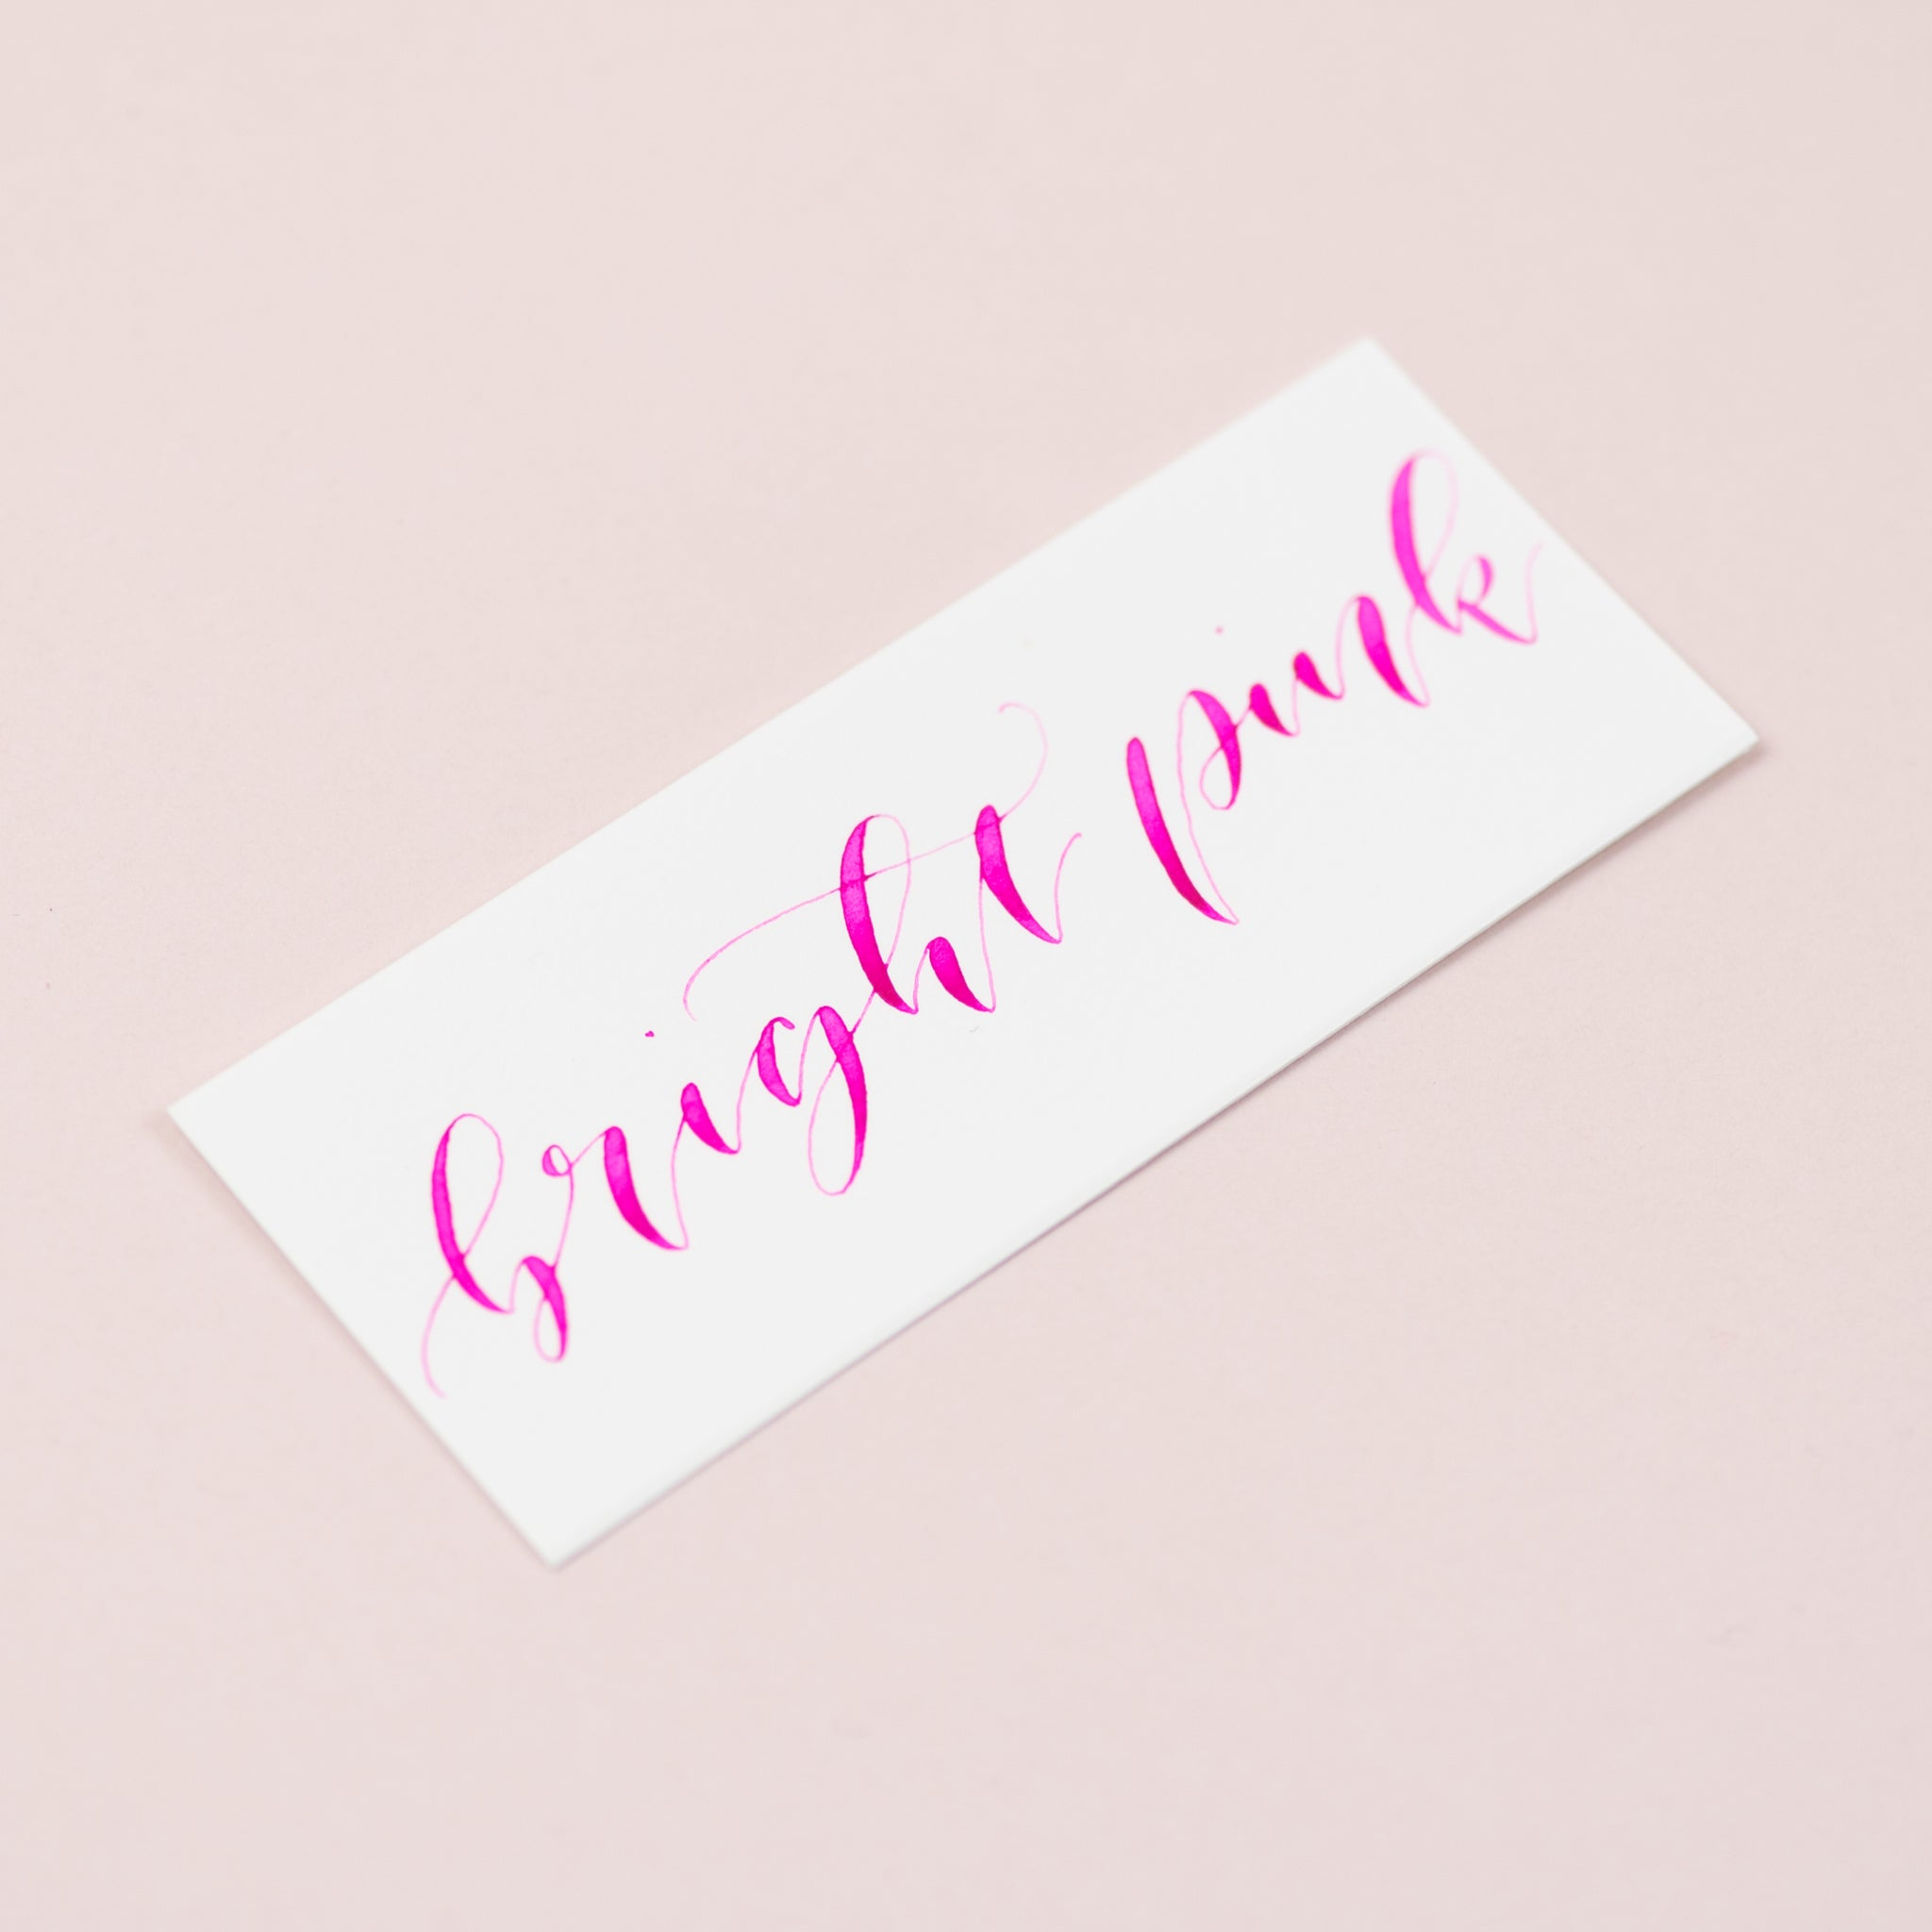 Bright Pink Calligraphy Ink